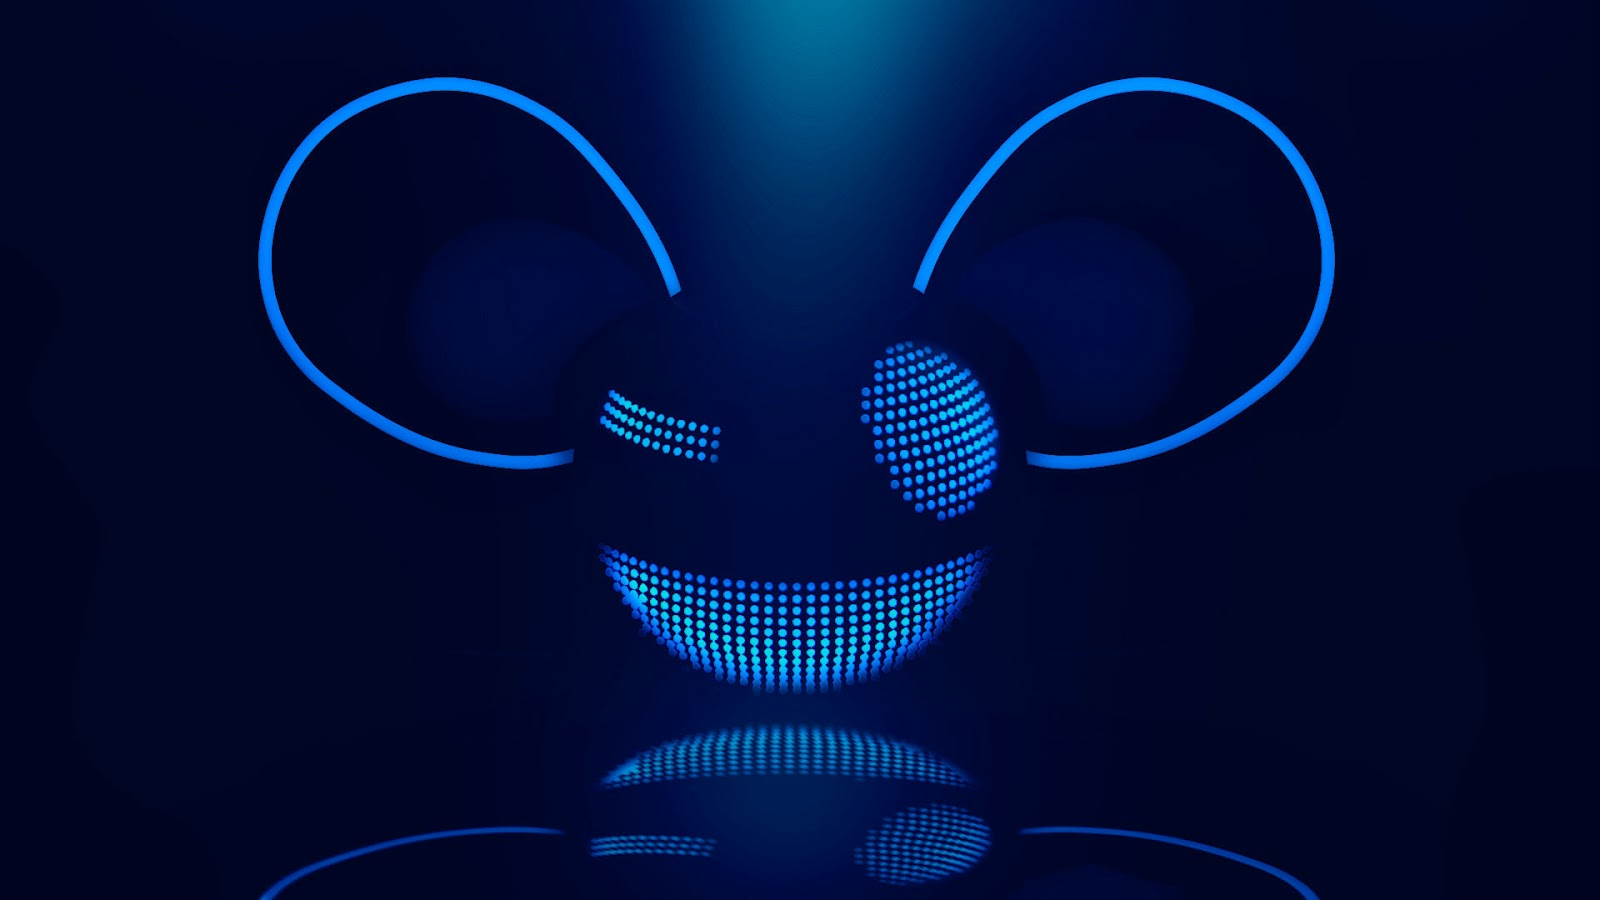 Deadmau5 wallpaper deadmau5 wallpaper for Mouse house music